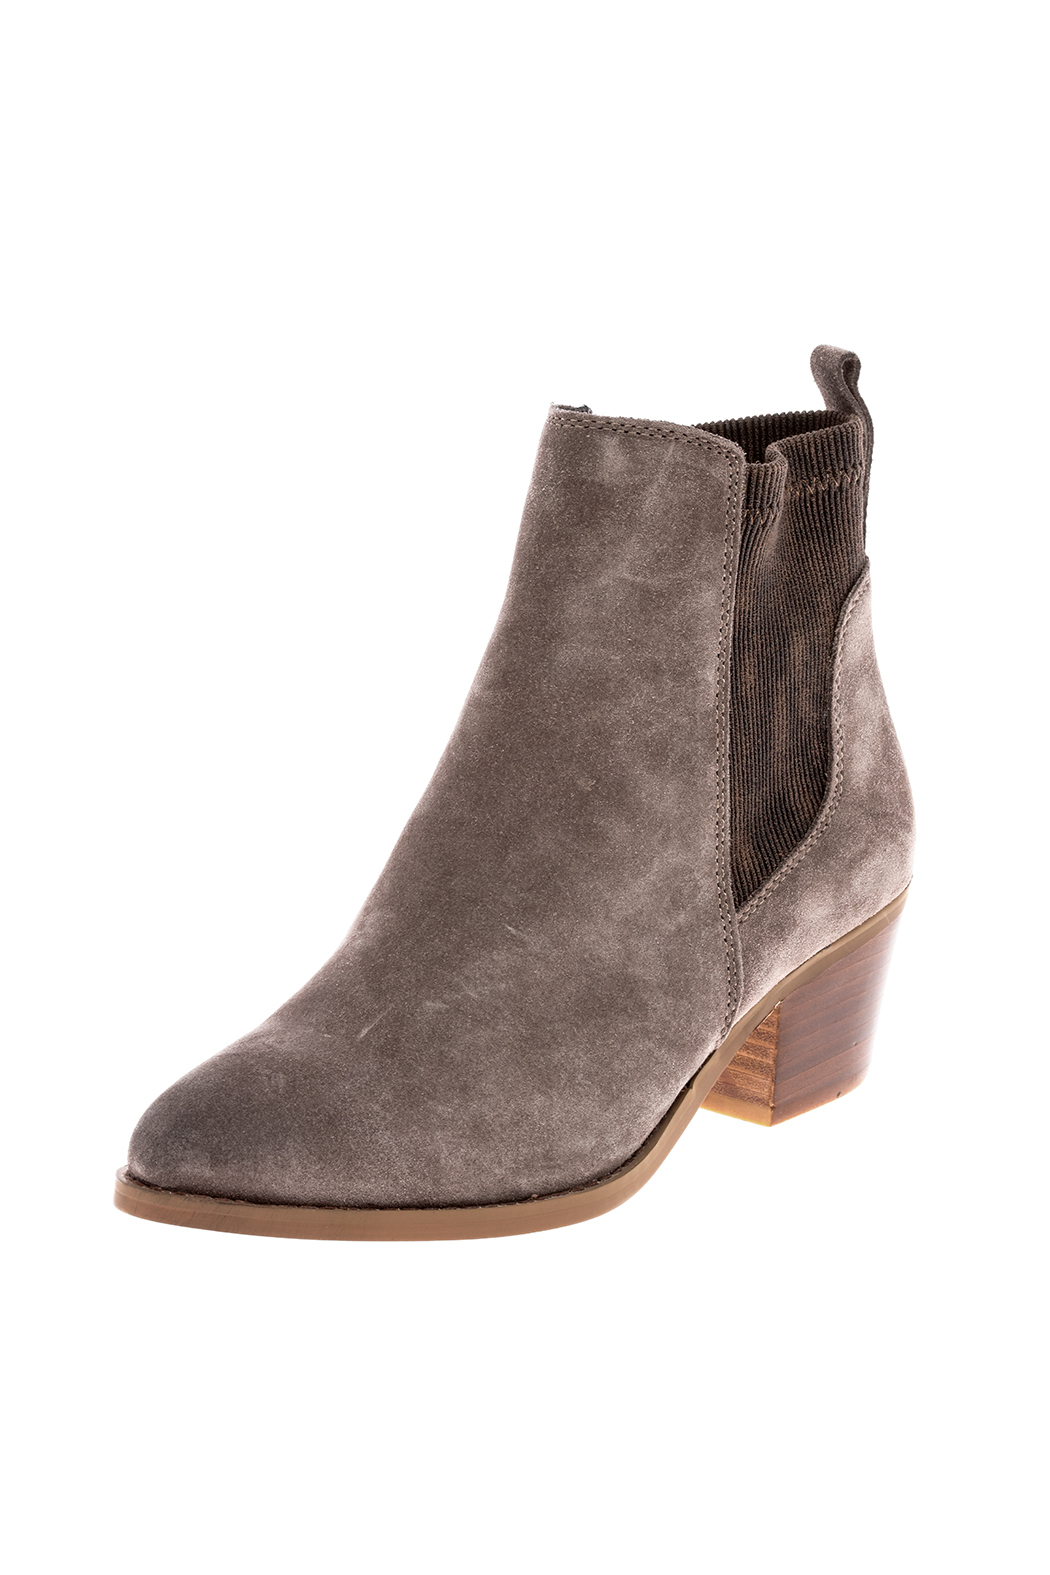 Very Volatile Chelase Style Suede Bootie - Back Cropped Image